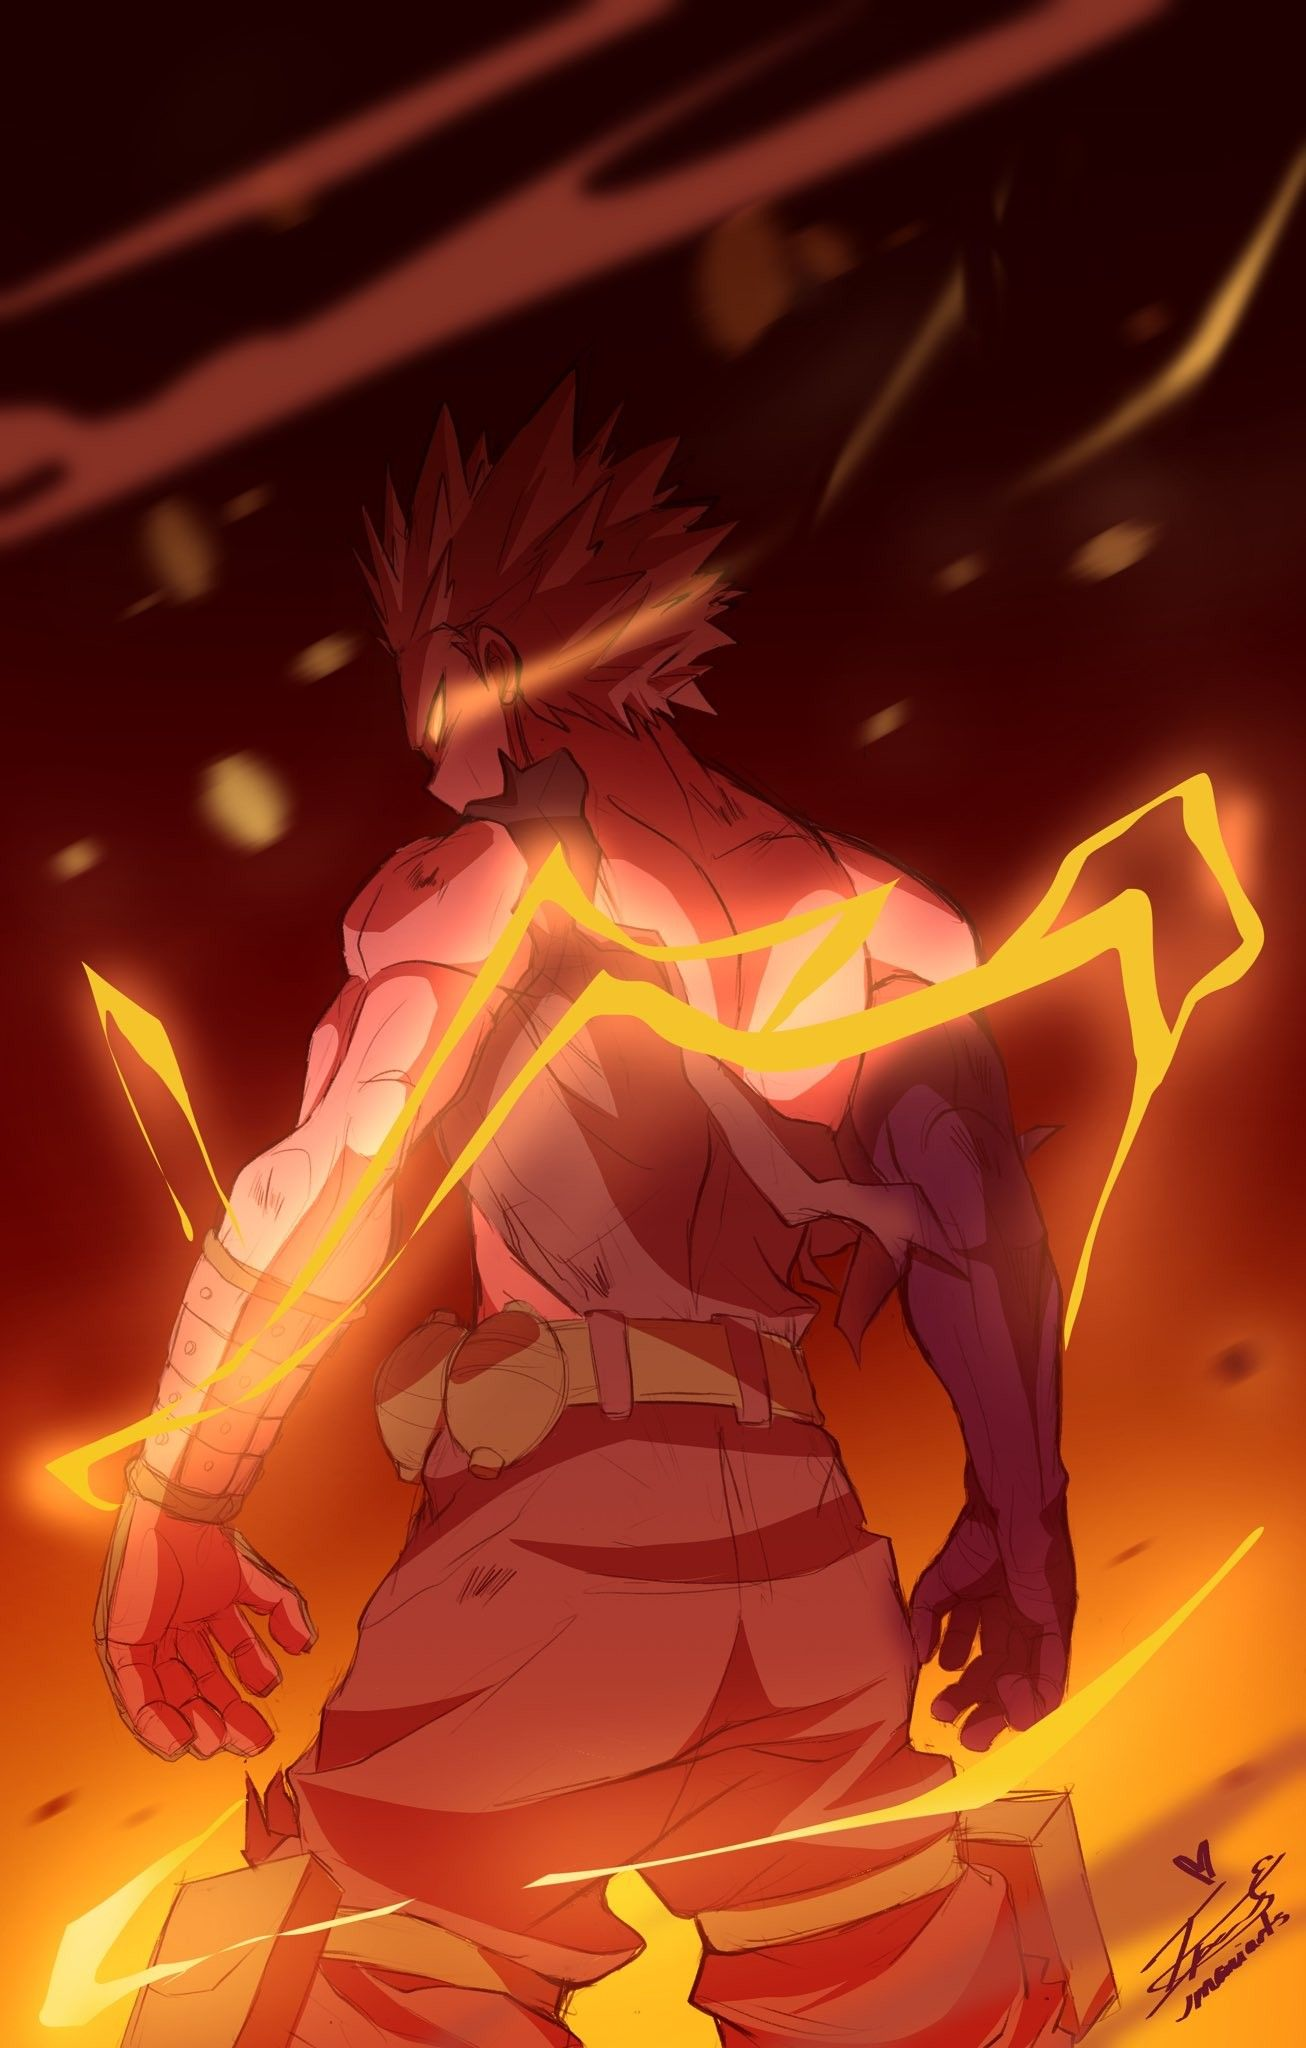 Katsuki Bakugou One For All In 2020 Hero Wallpaper Cool Anime Wallpapers Anime Wallpaper